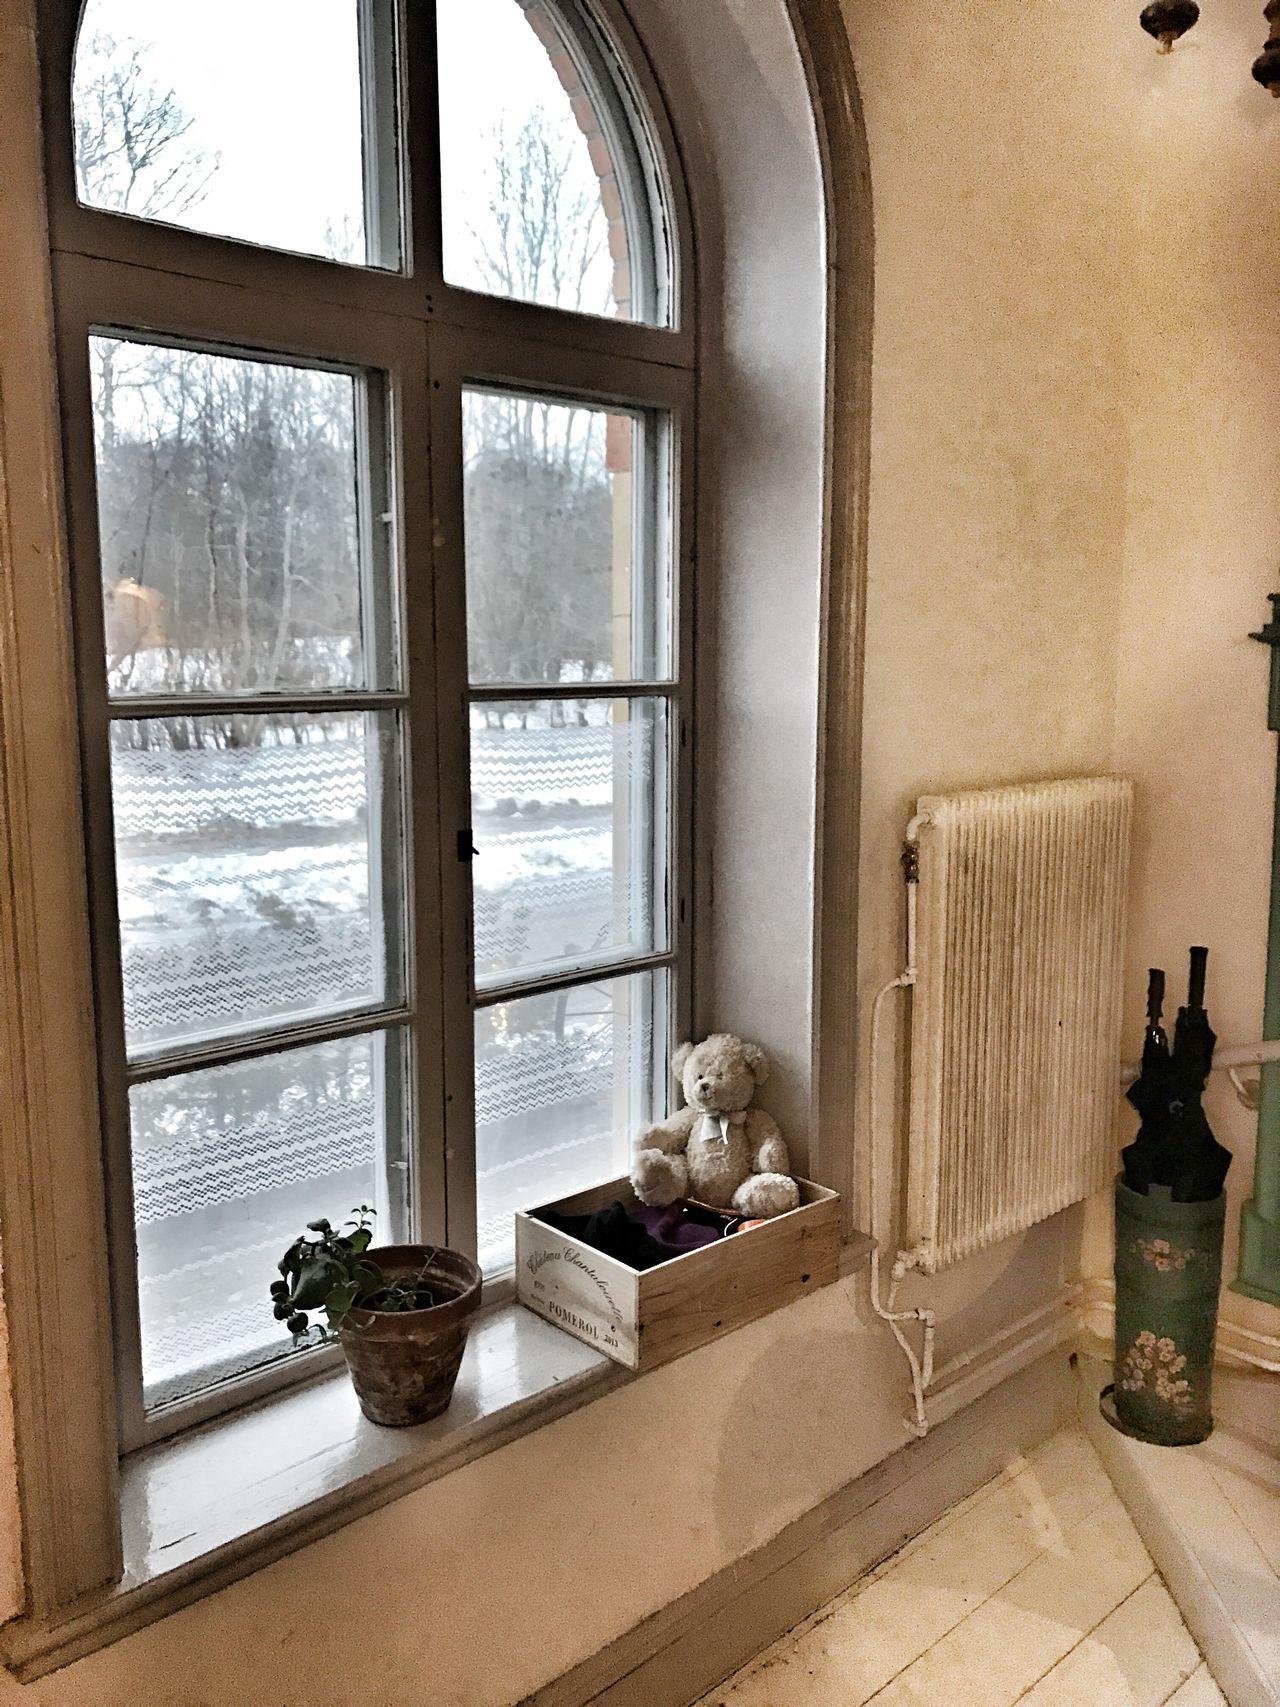 Window Home Interior Architecture Wood - Material Teddy Bear Train Station Hallstahammar Station Plant